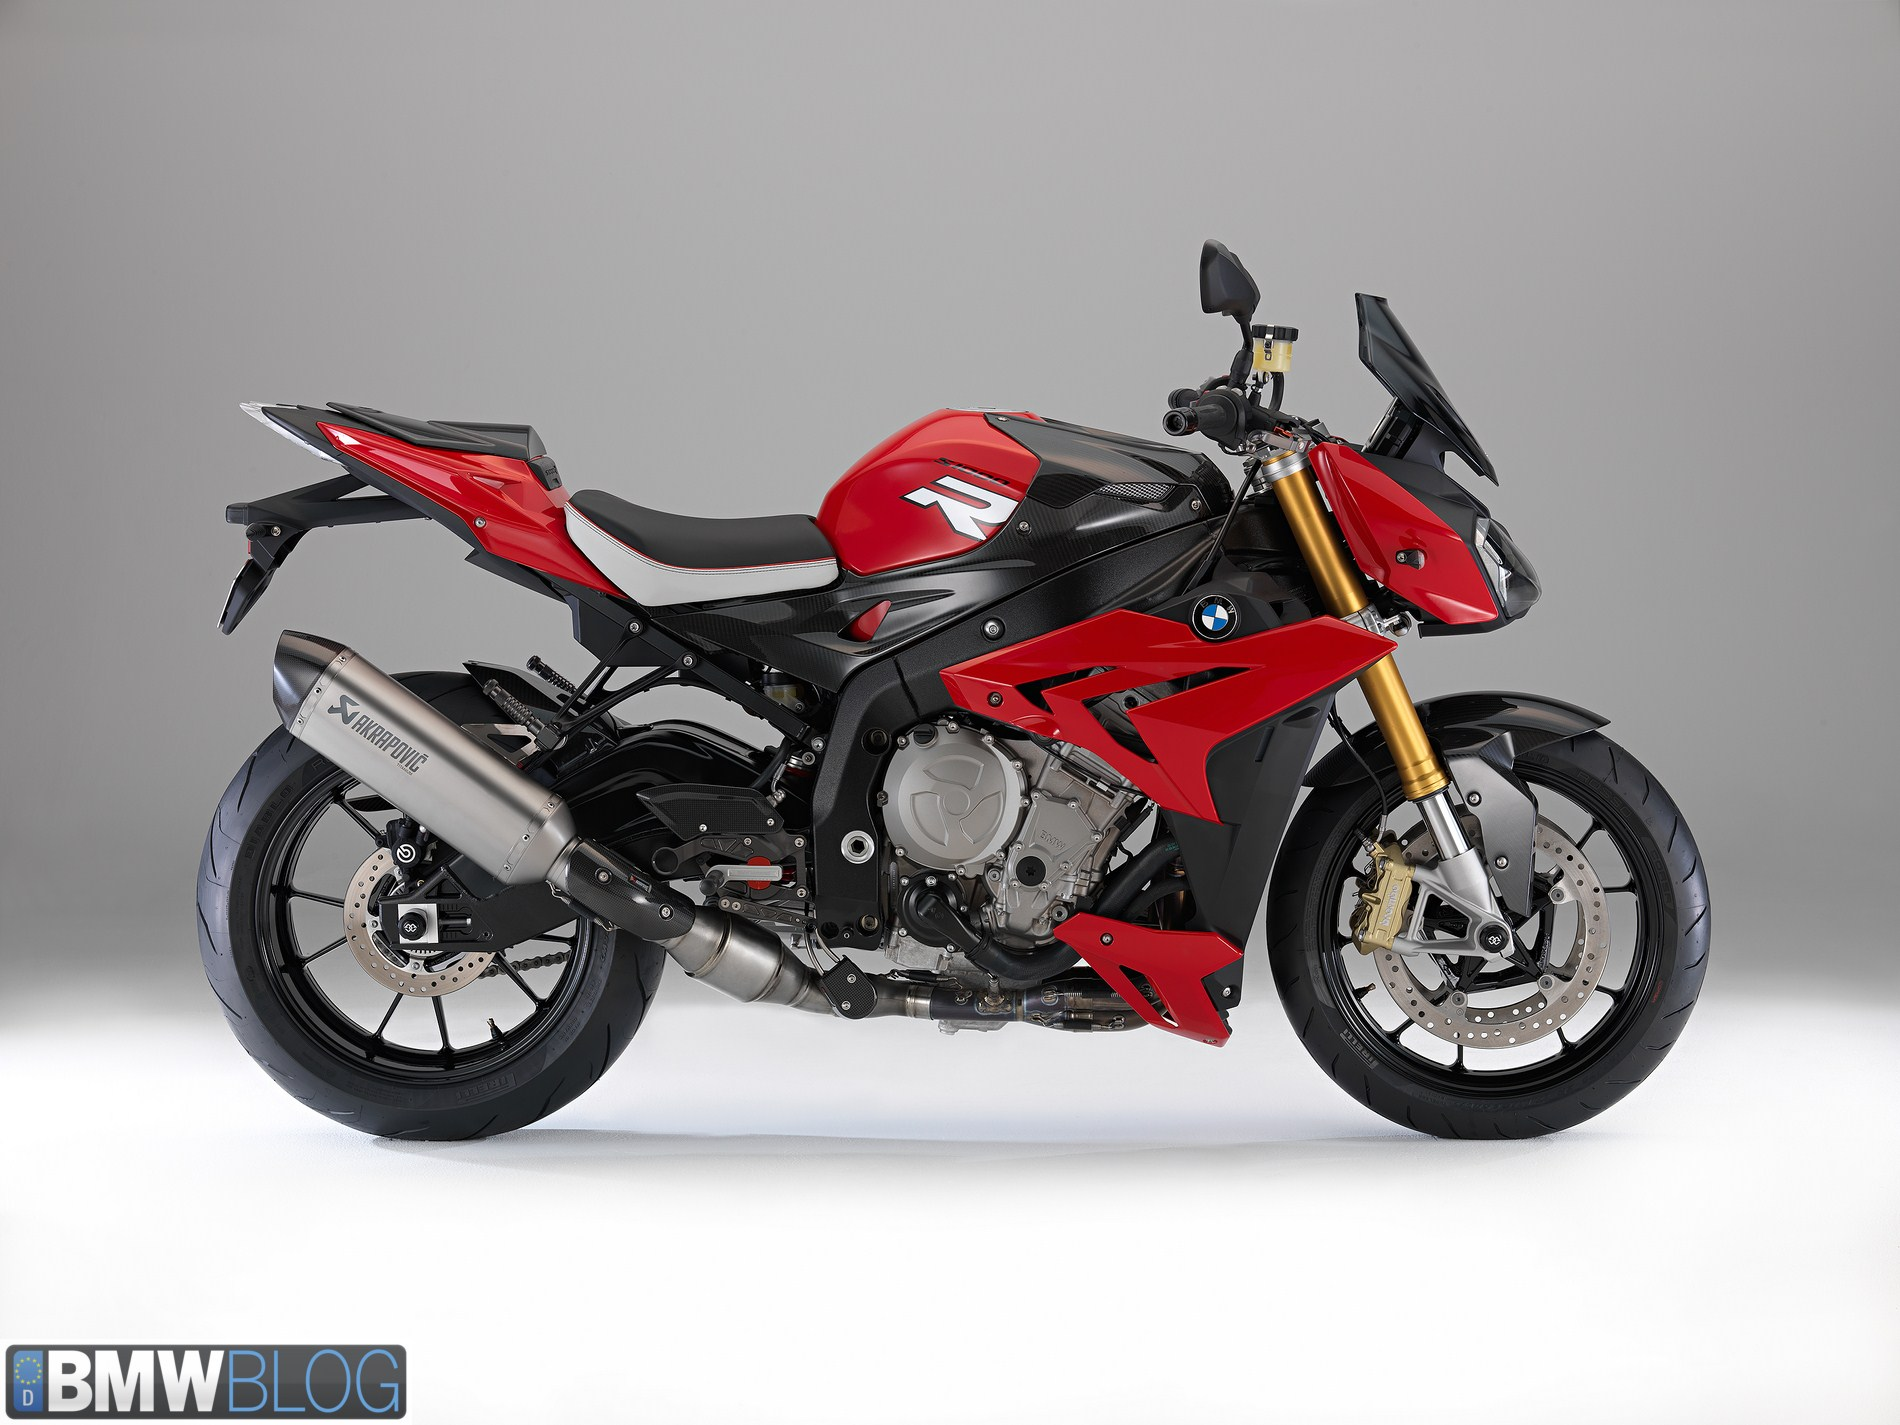 Bmw Motorrad Supplies Over 100 000 Vehicles For The First Time As Of